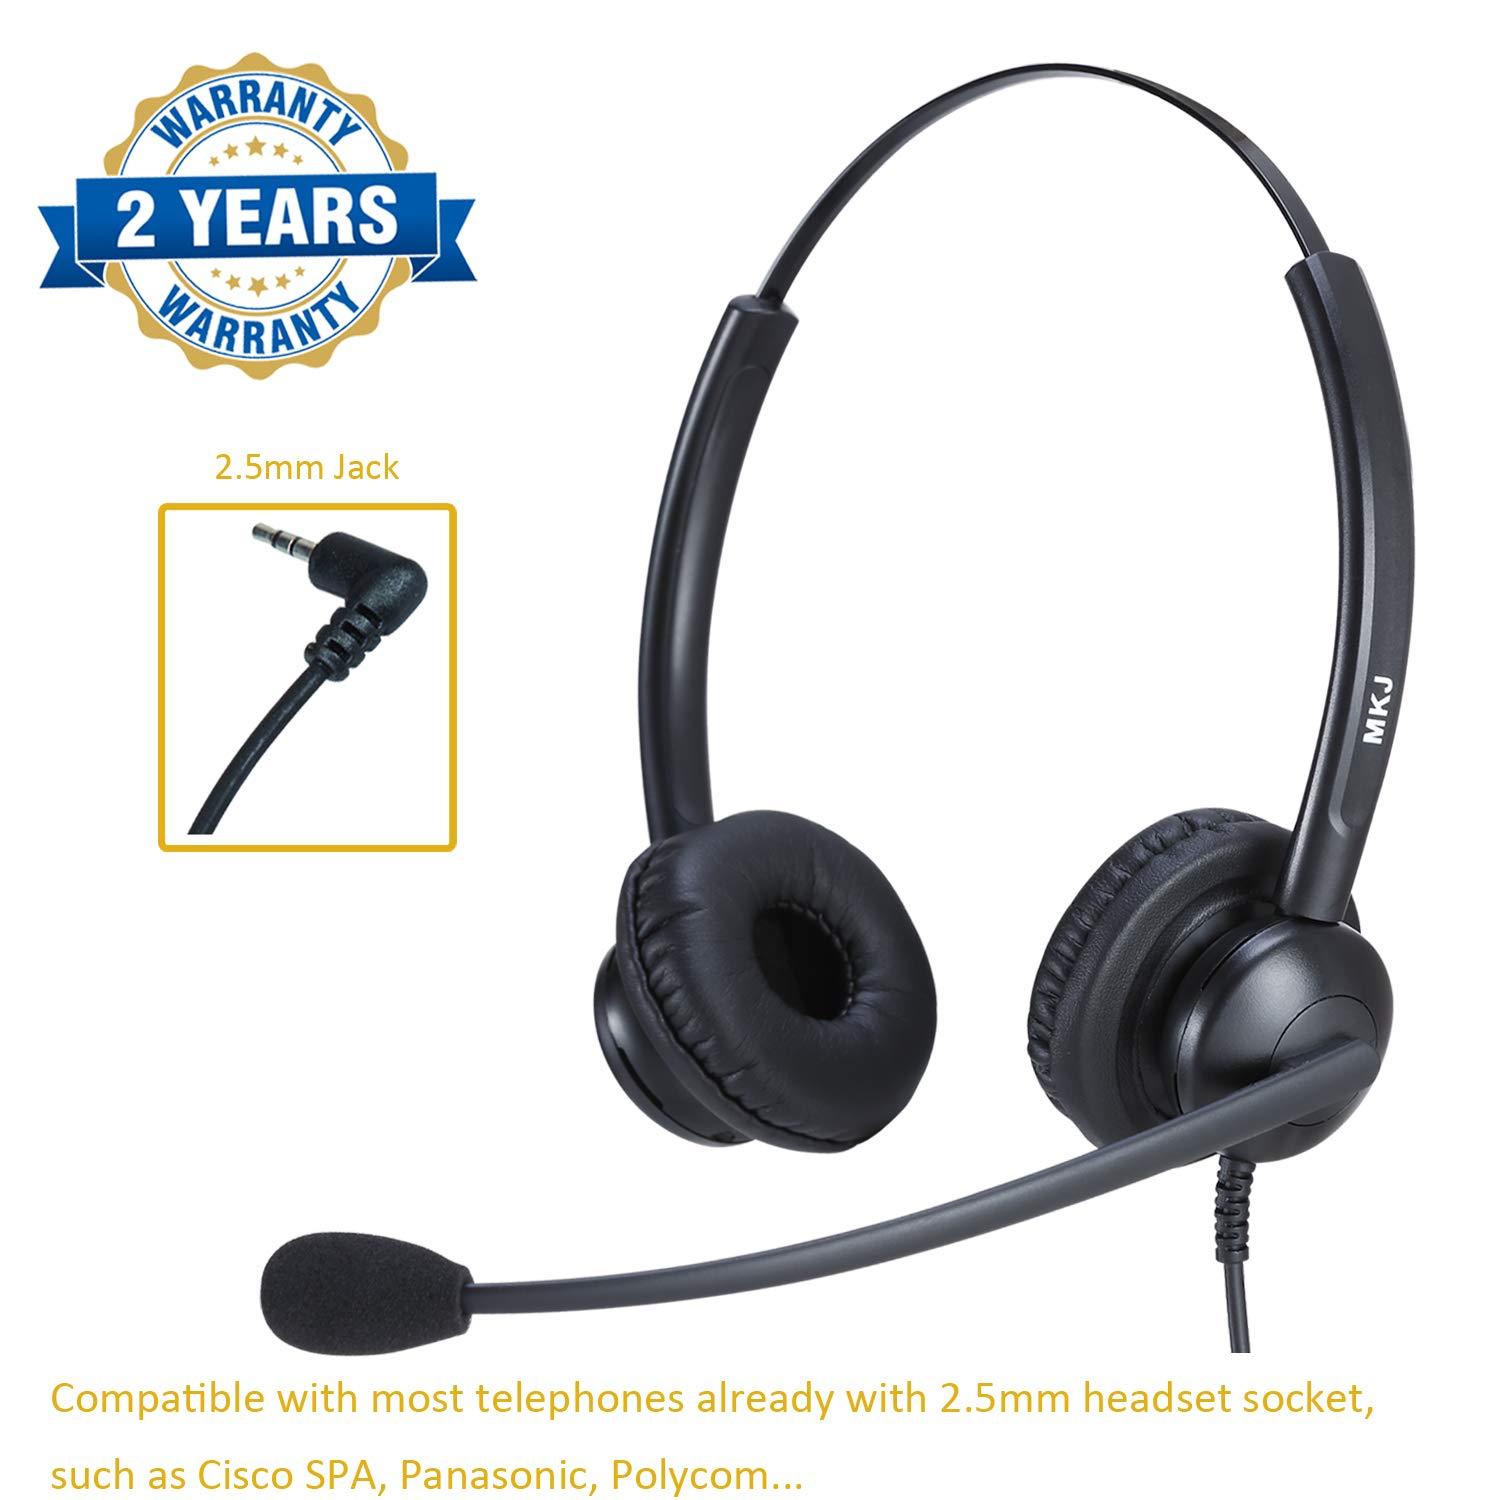 Corded 2.5mm Headset with Microphone Dual Ear Office Phone Headset for Cisco Linksys SPA Polycom Panasonic & Gigaset and Cordless Dect Phones by MKJ